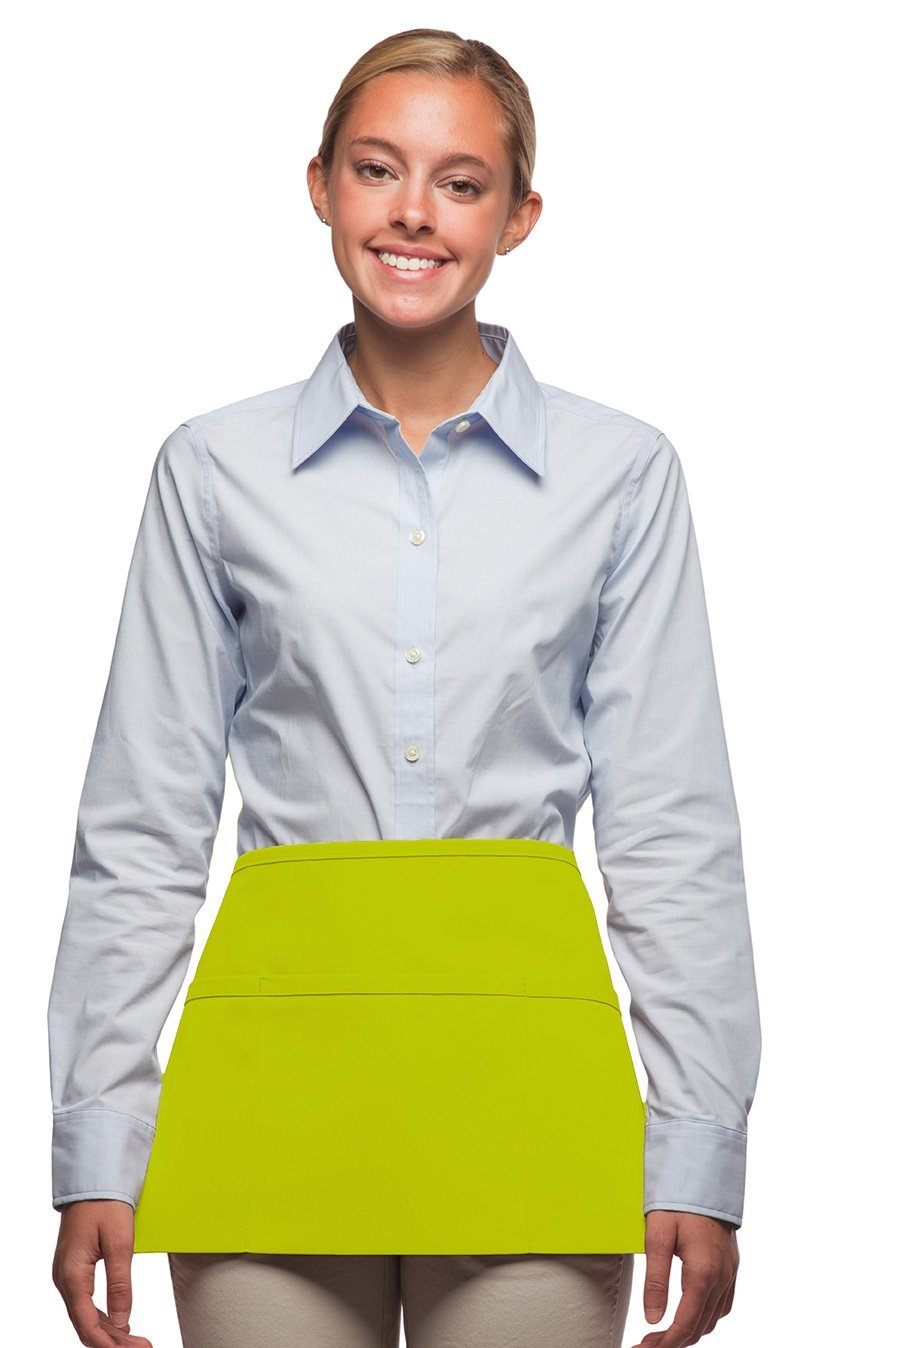 Lime Deluxe Waist Apron (3 Pockets)